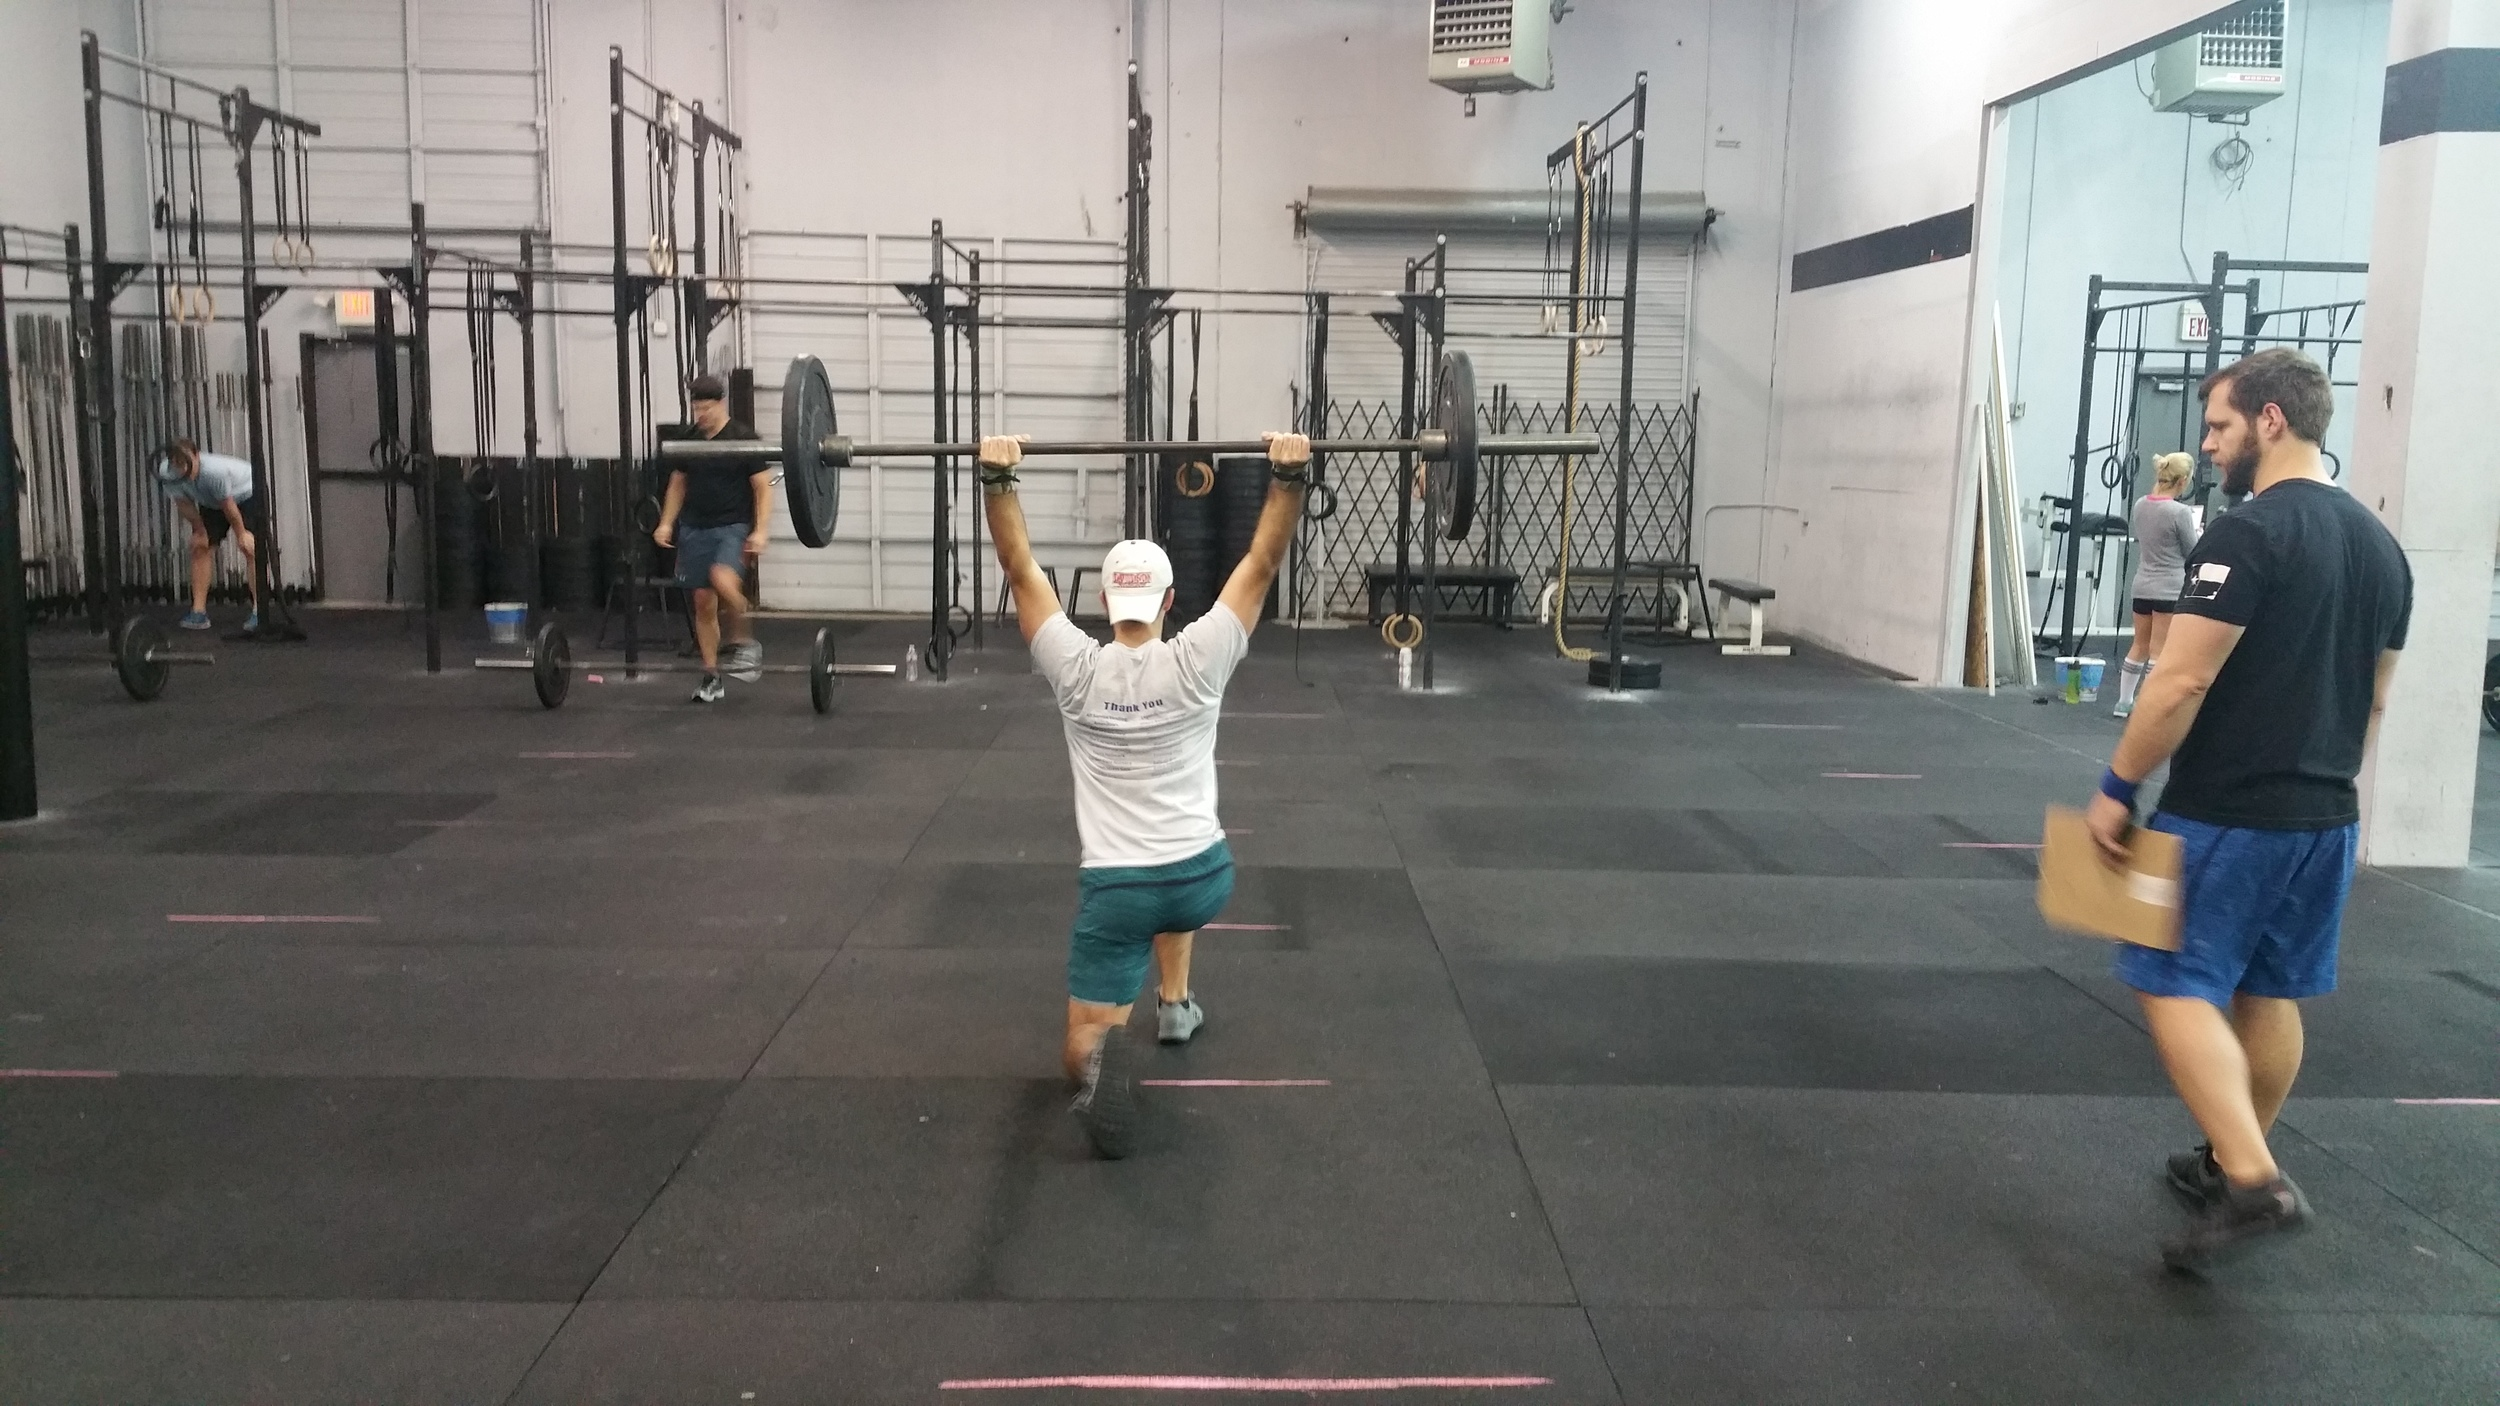 Due to limited space and the long duration of the workout we will be starting at 4pm. I would recommend coming in early and knocking it out so your wait time is less.